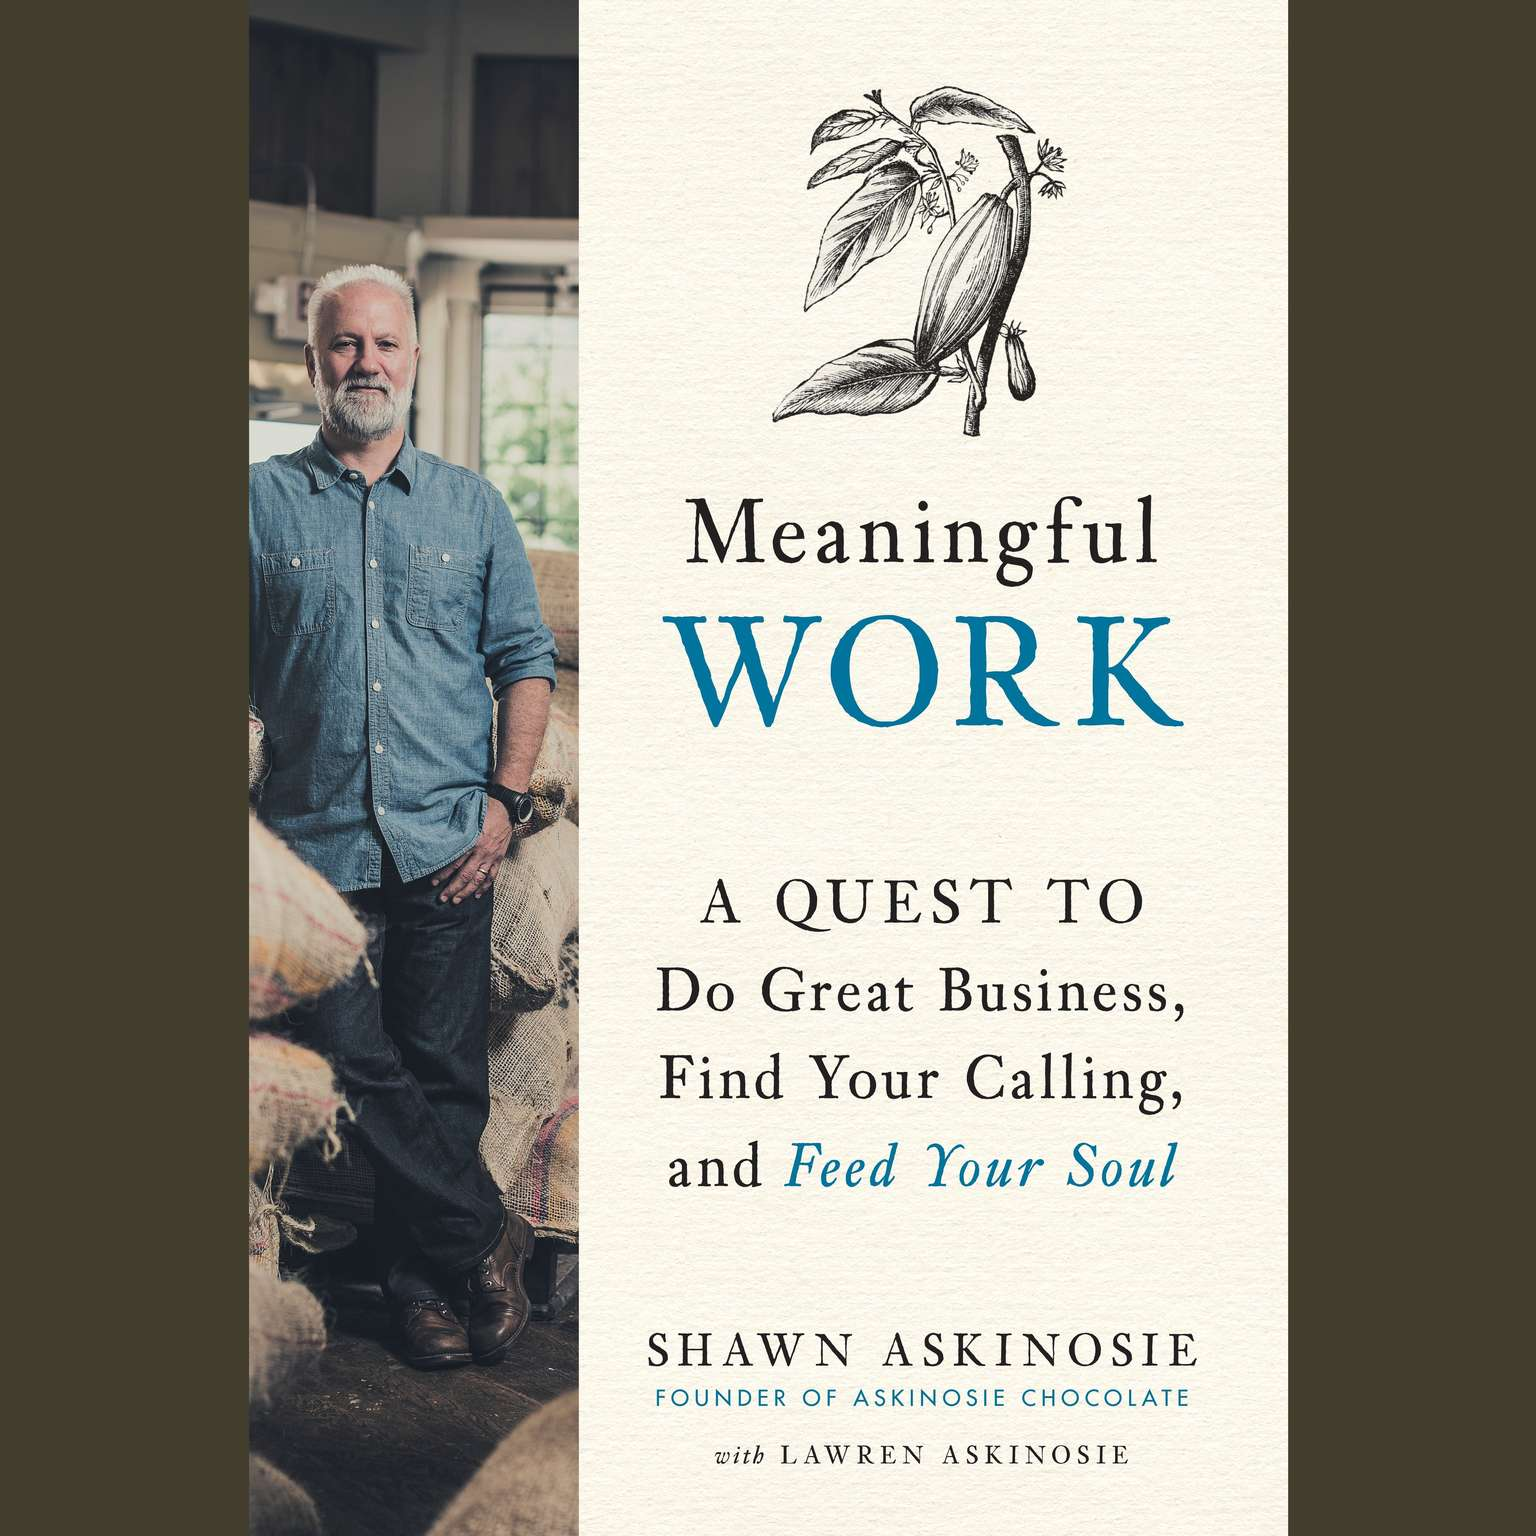 Meaningful Work: A Quest to Do Great Business, Find Your Calling, and Feed Your Soul Audiobook, by Shawn Askinosie